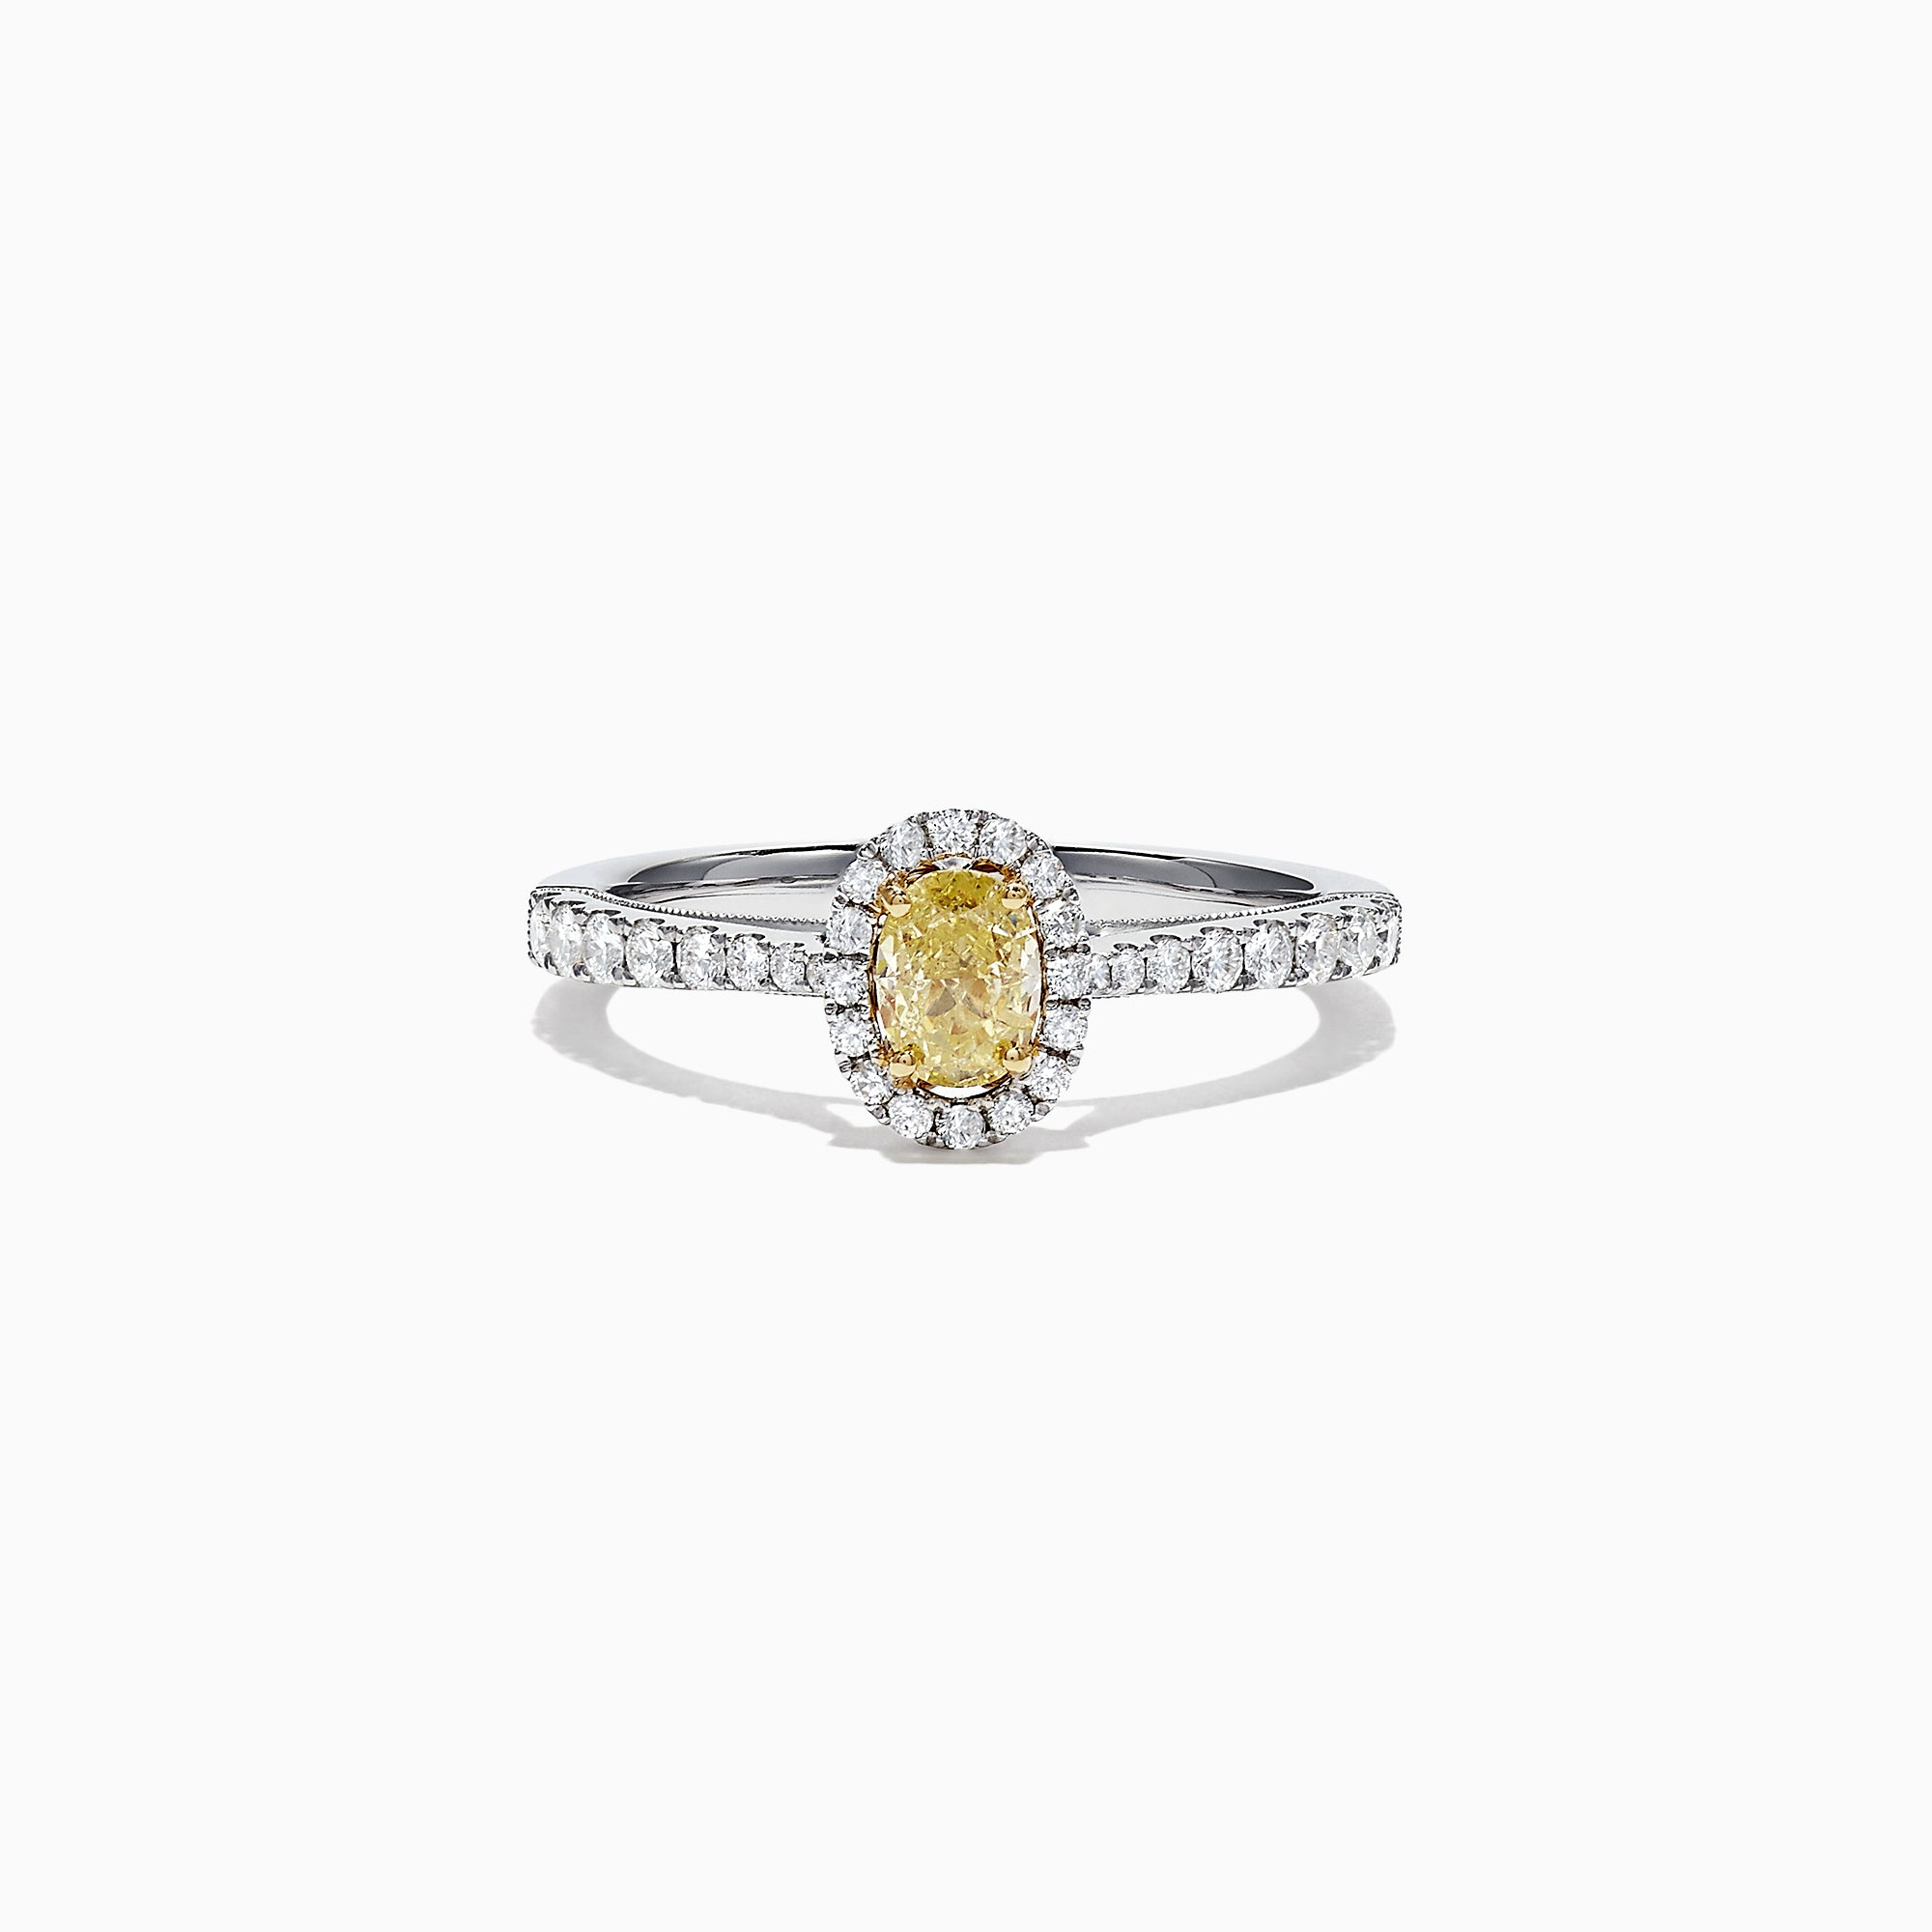 Effy Canare 18K Two-Tone Gold Yellow and White Diamond Ring, 0.79 TCW